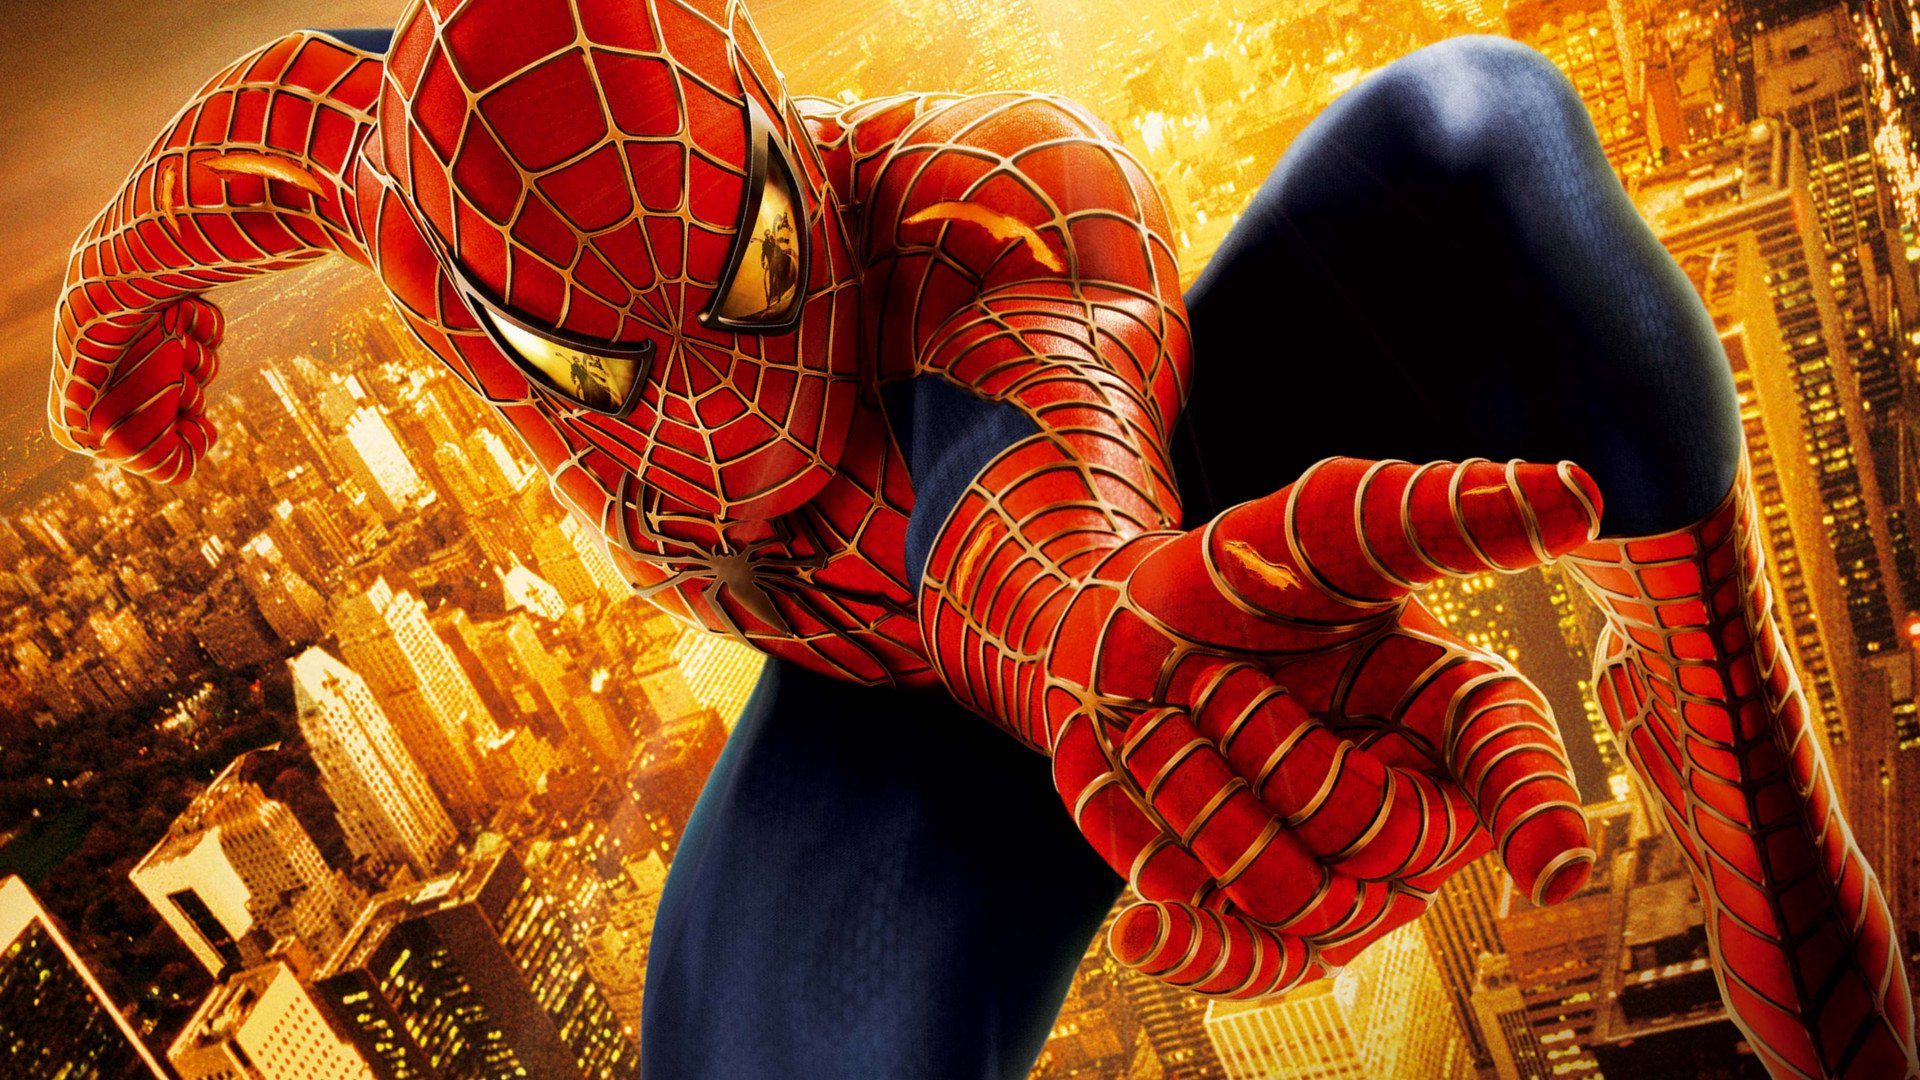 Spiderman Live Wallpaper Hd: Spider-Man 2 HD Wallpaper